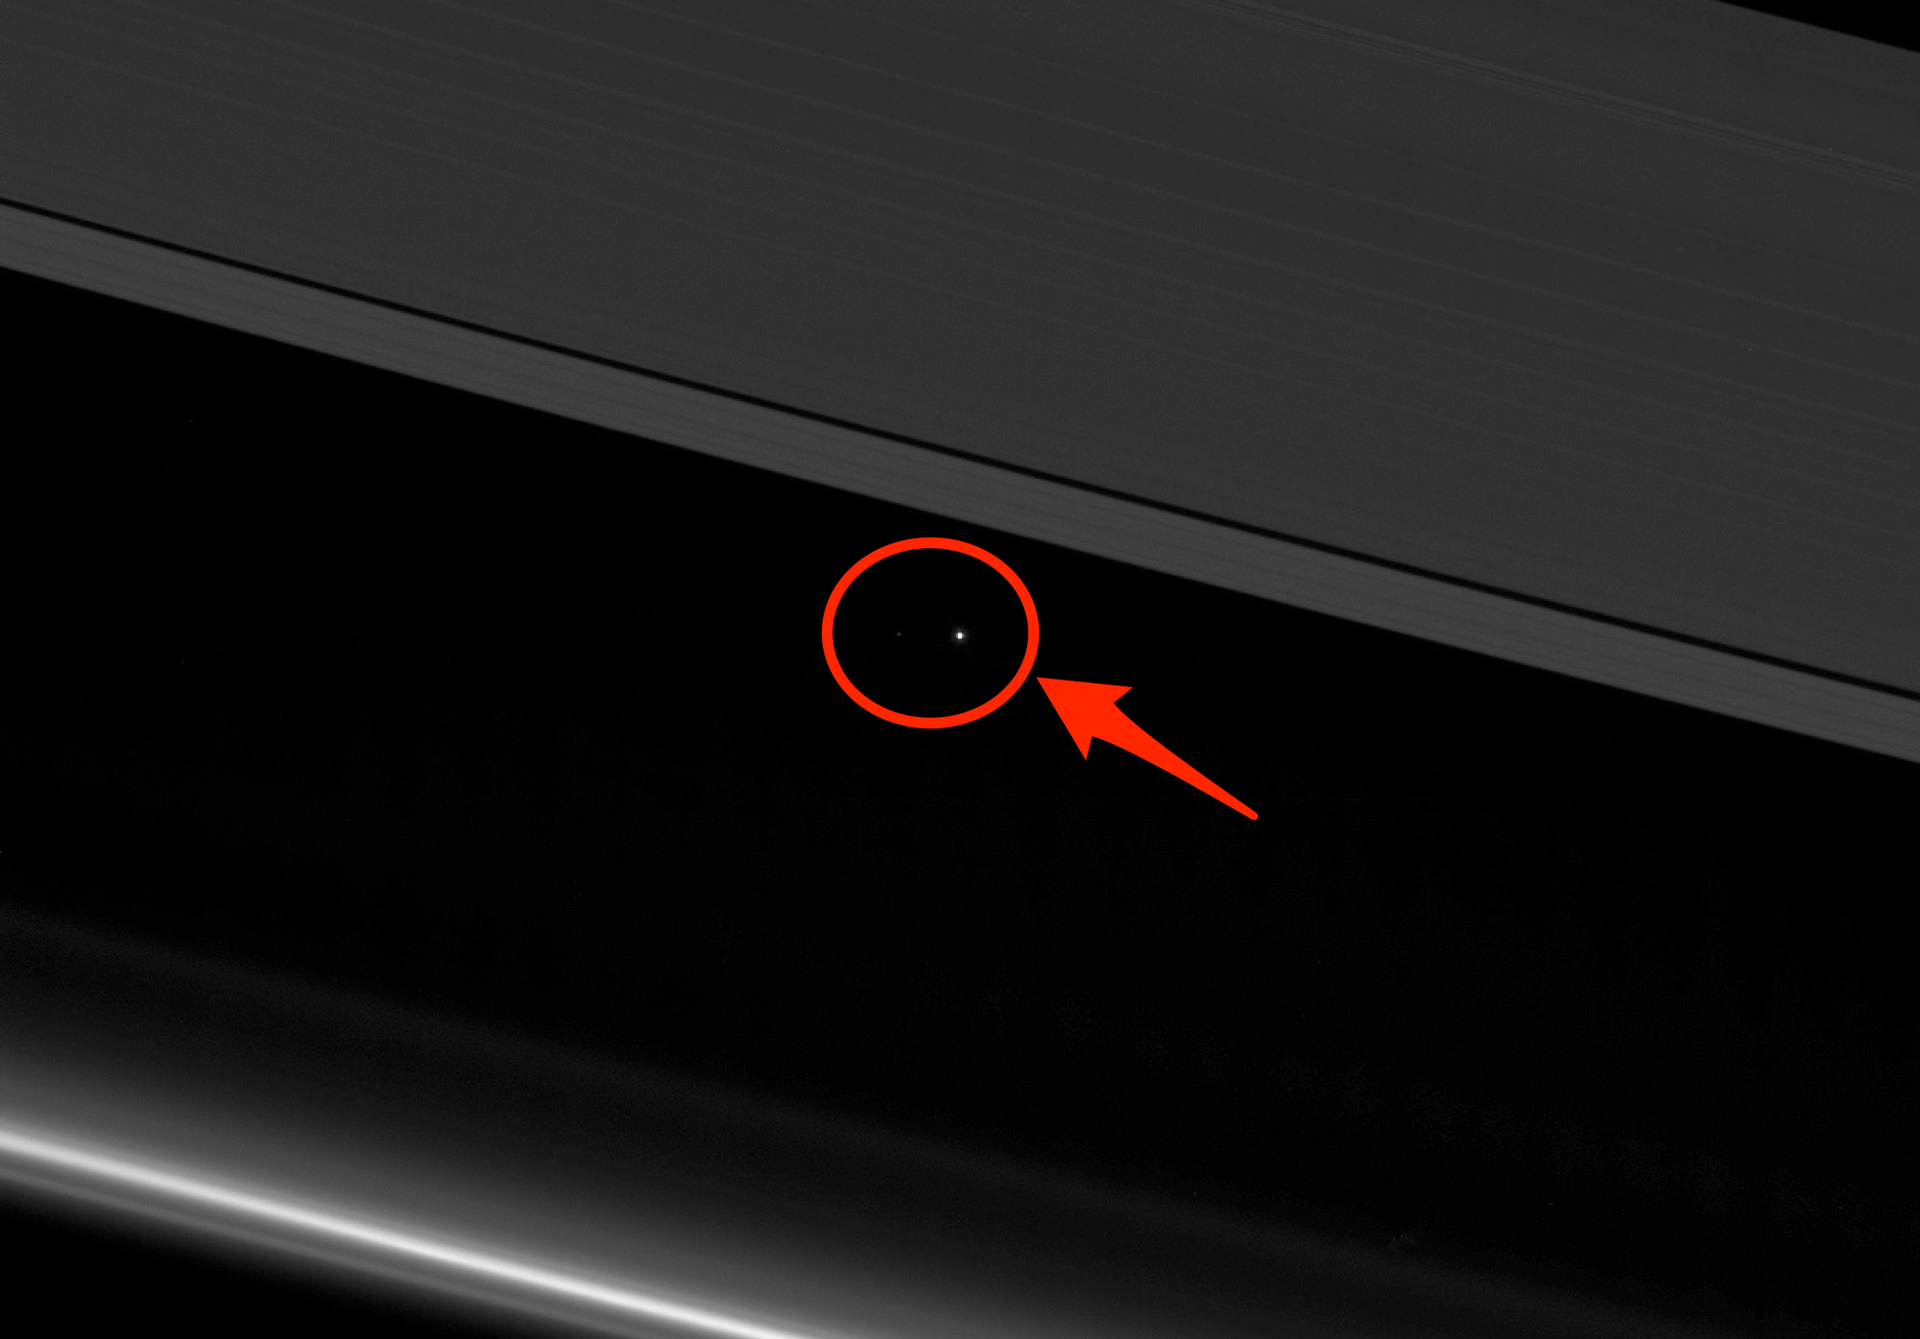 58fa3a3c0ba0b8db158b506c-1920-1339  Earth Seen Between Saturn's Rings.png